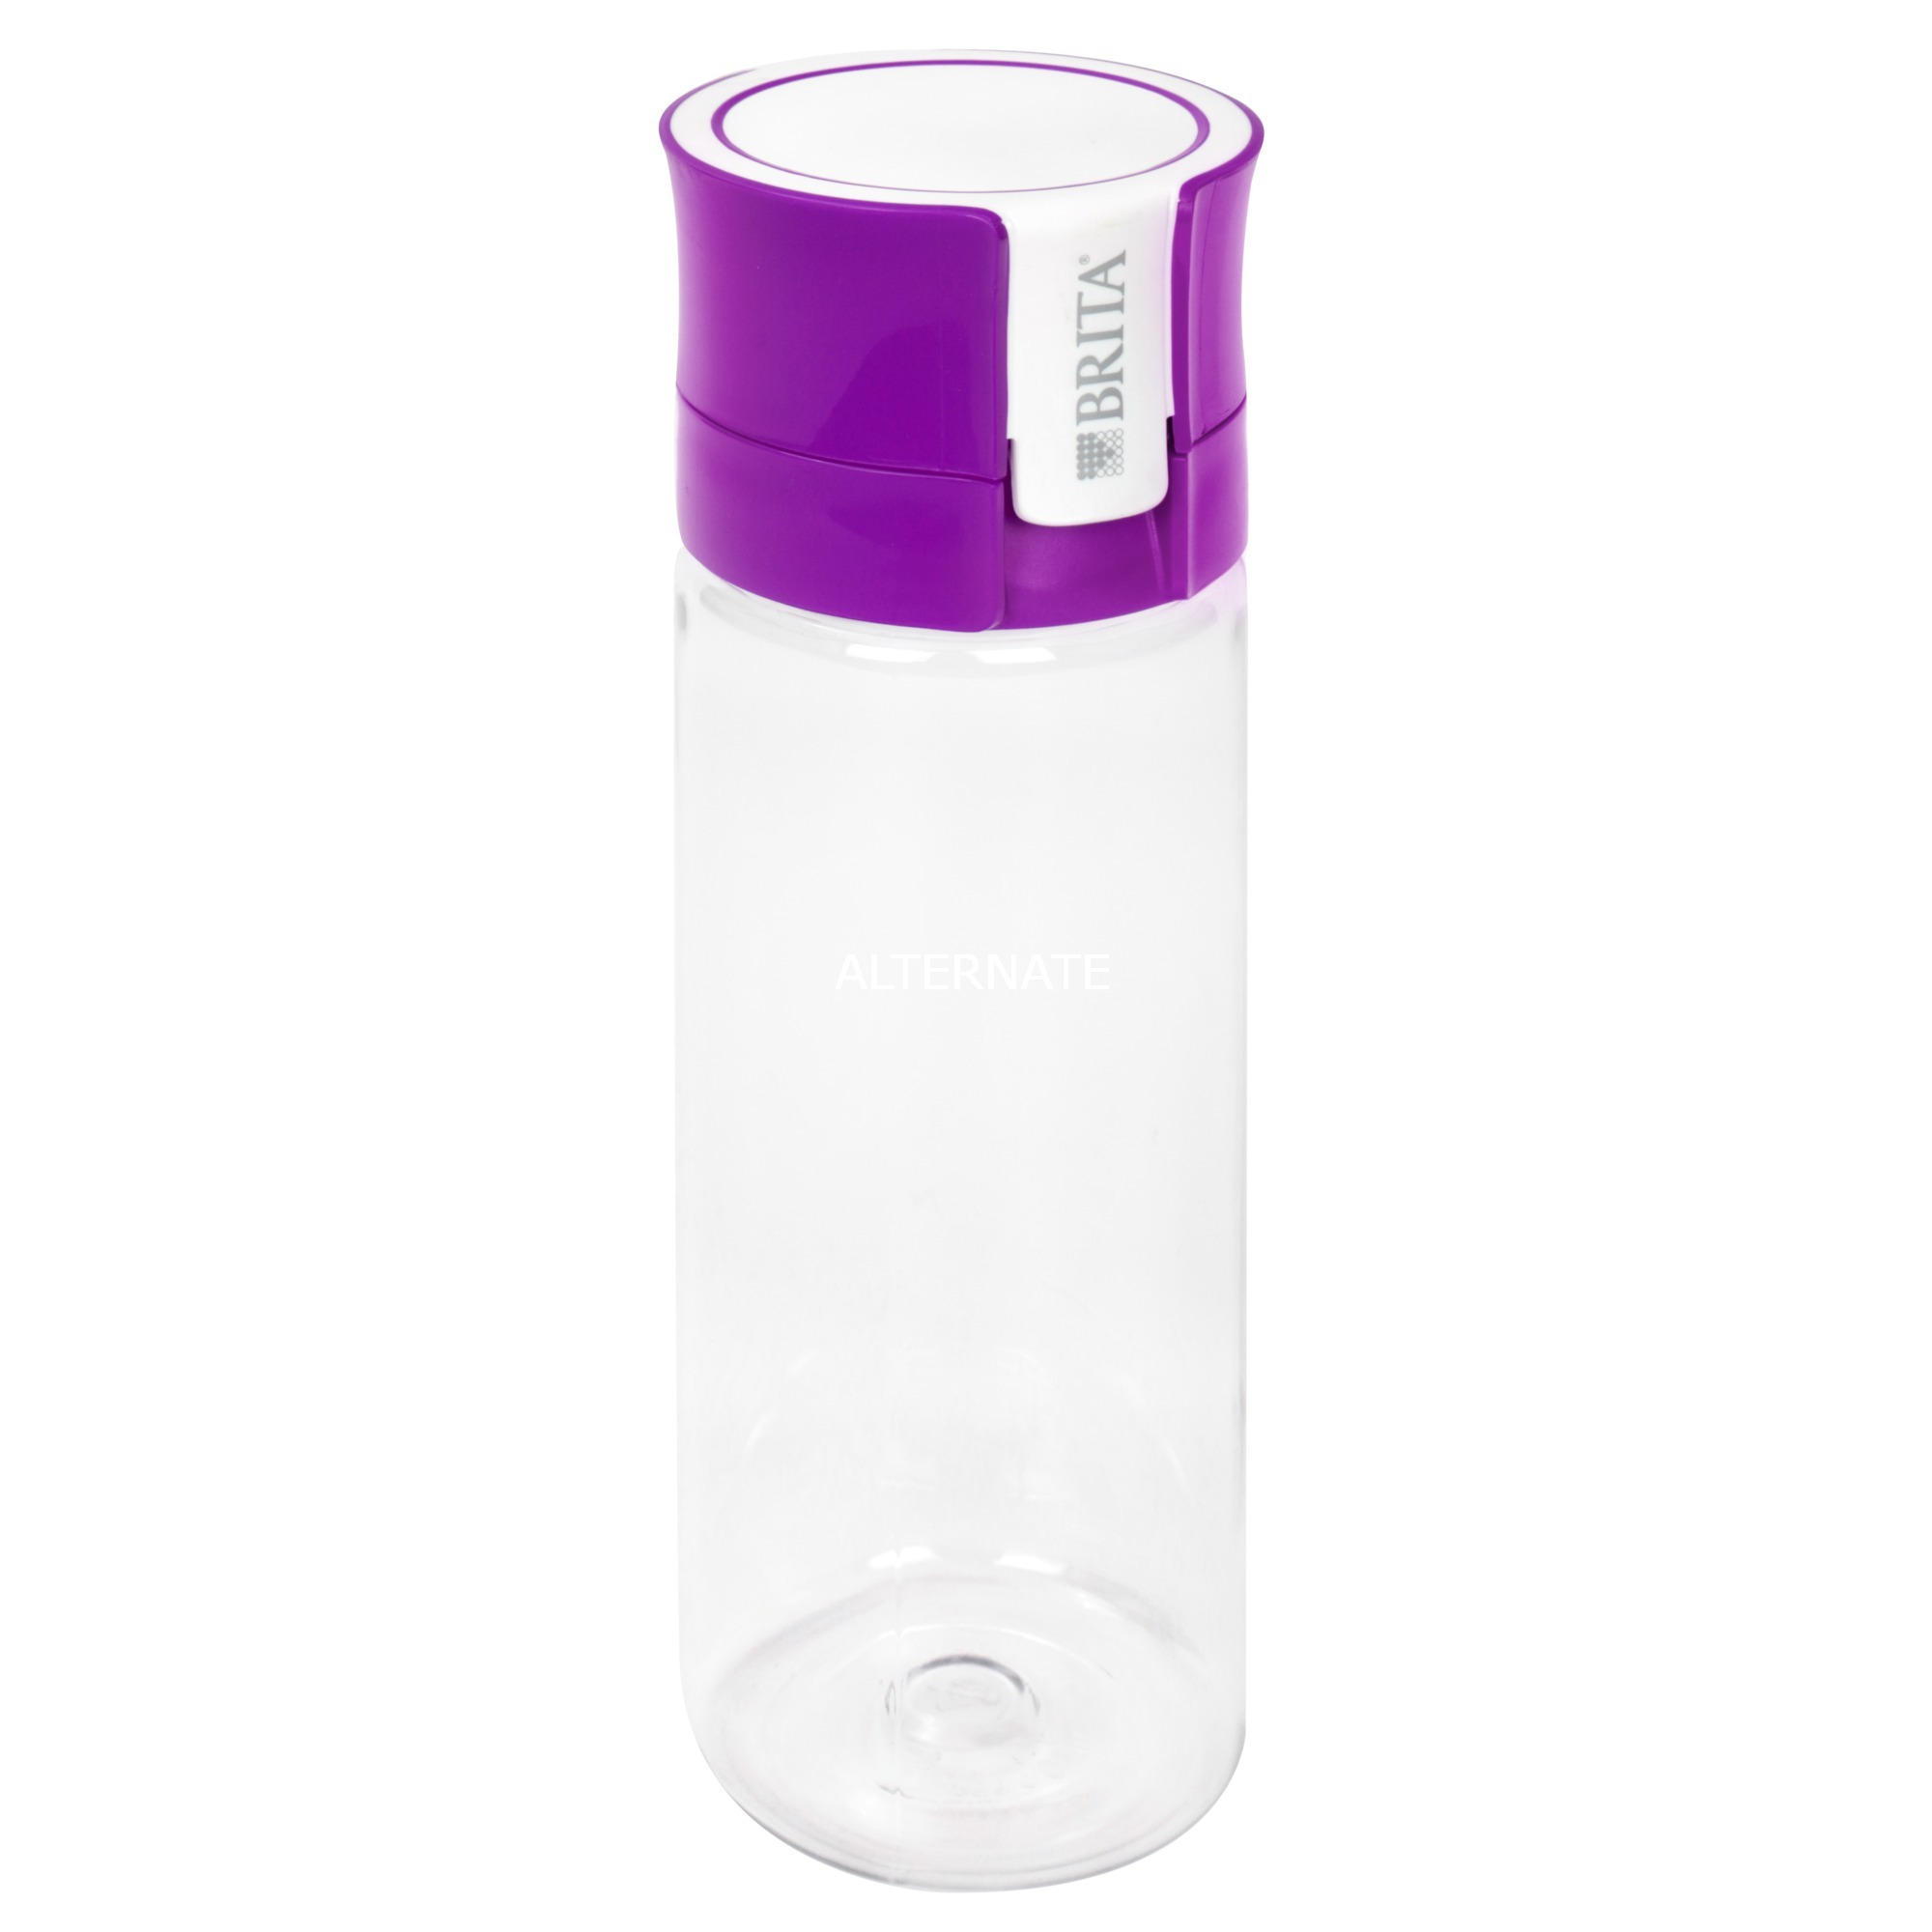 Fill&Go Bottle Filtr Purple Botella con filtro de agua Púrpura, Transparente